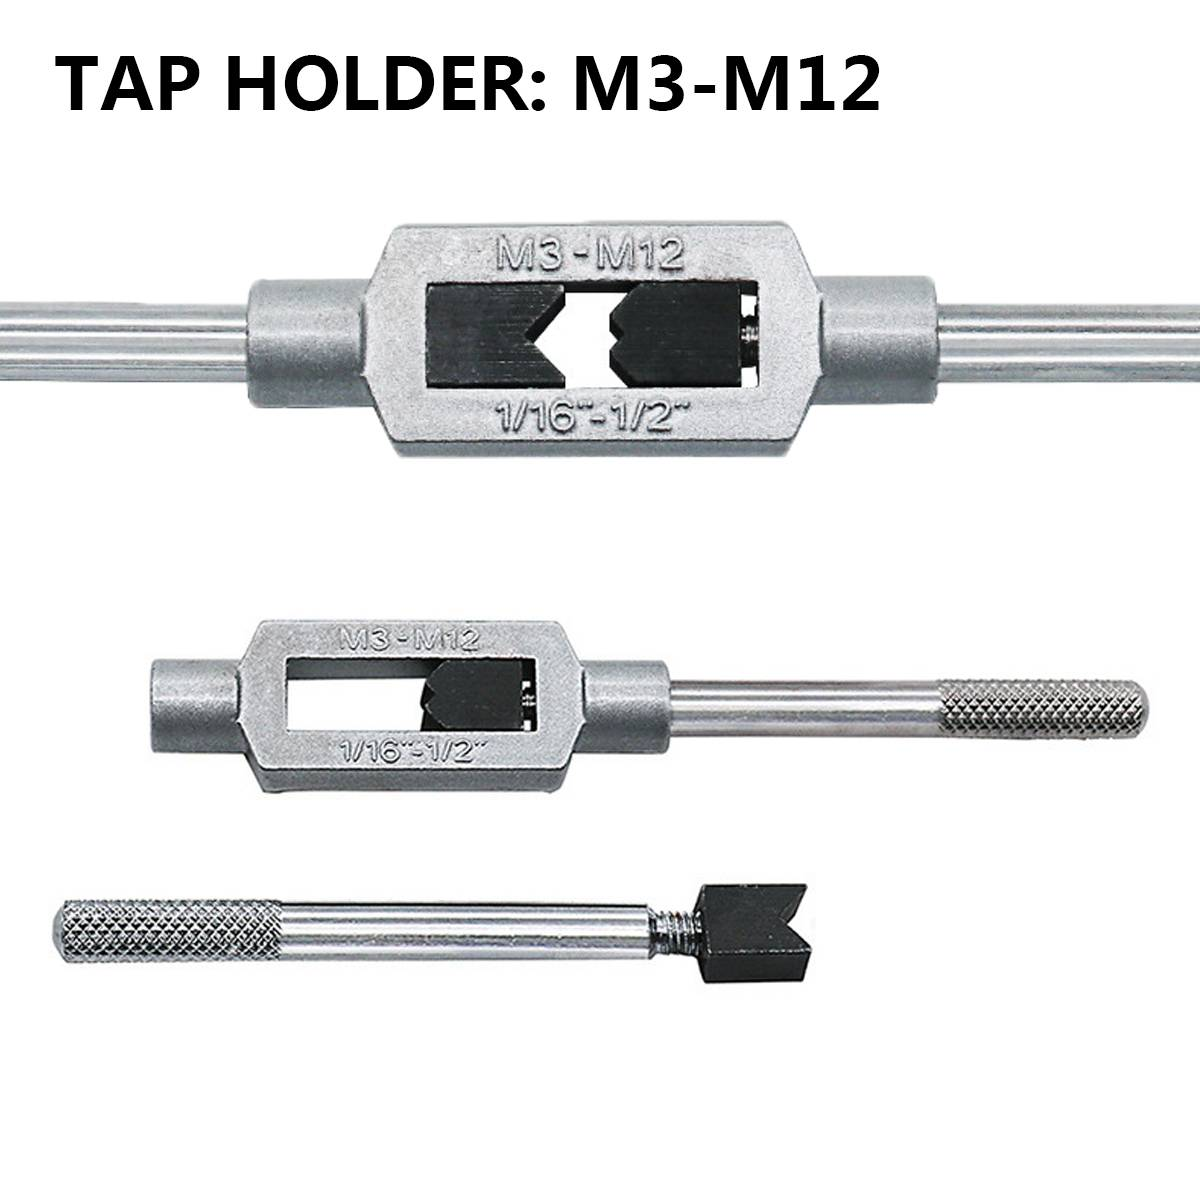 Tools : Tap Thread Cutter Tap Set Machine Taps M3 M4 M5 M6 M8 M10 M12 M14 M16 M18 M20 Twist Drill Metric Right Hand